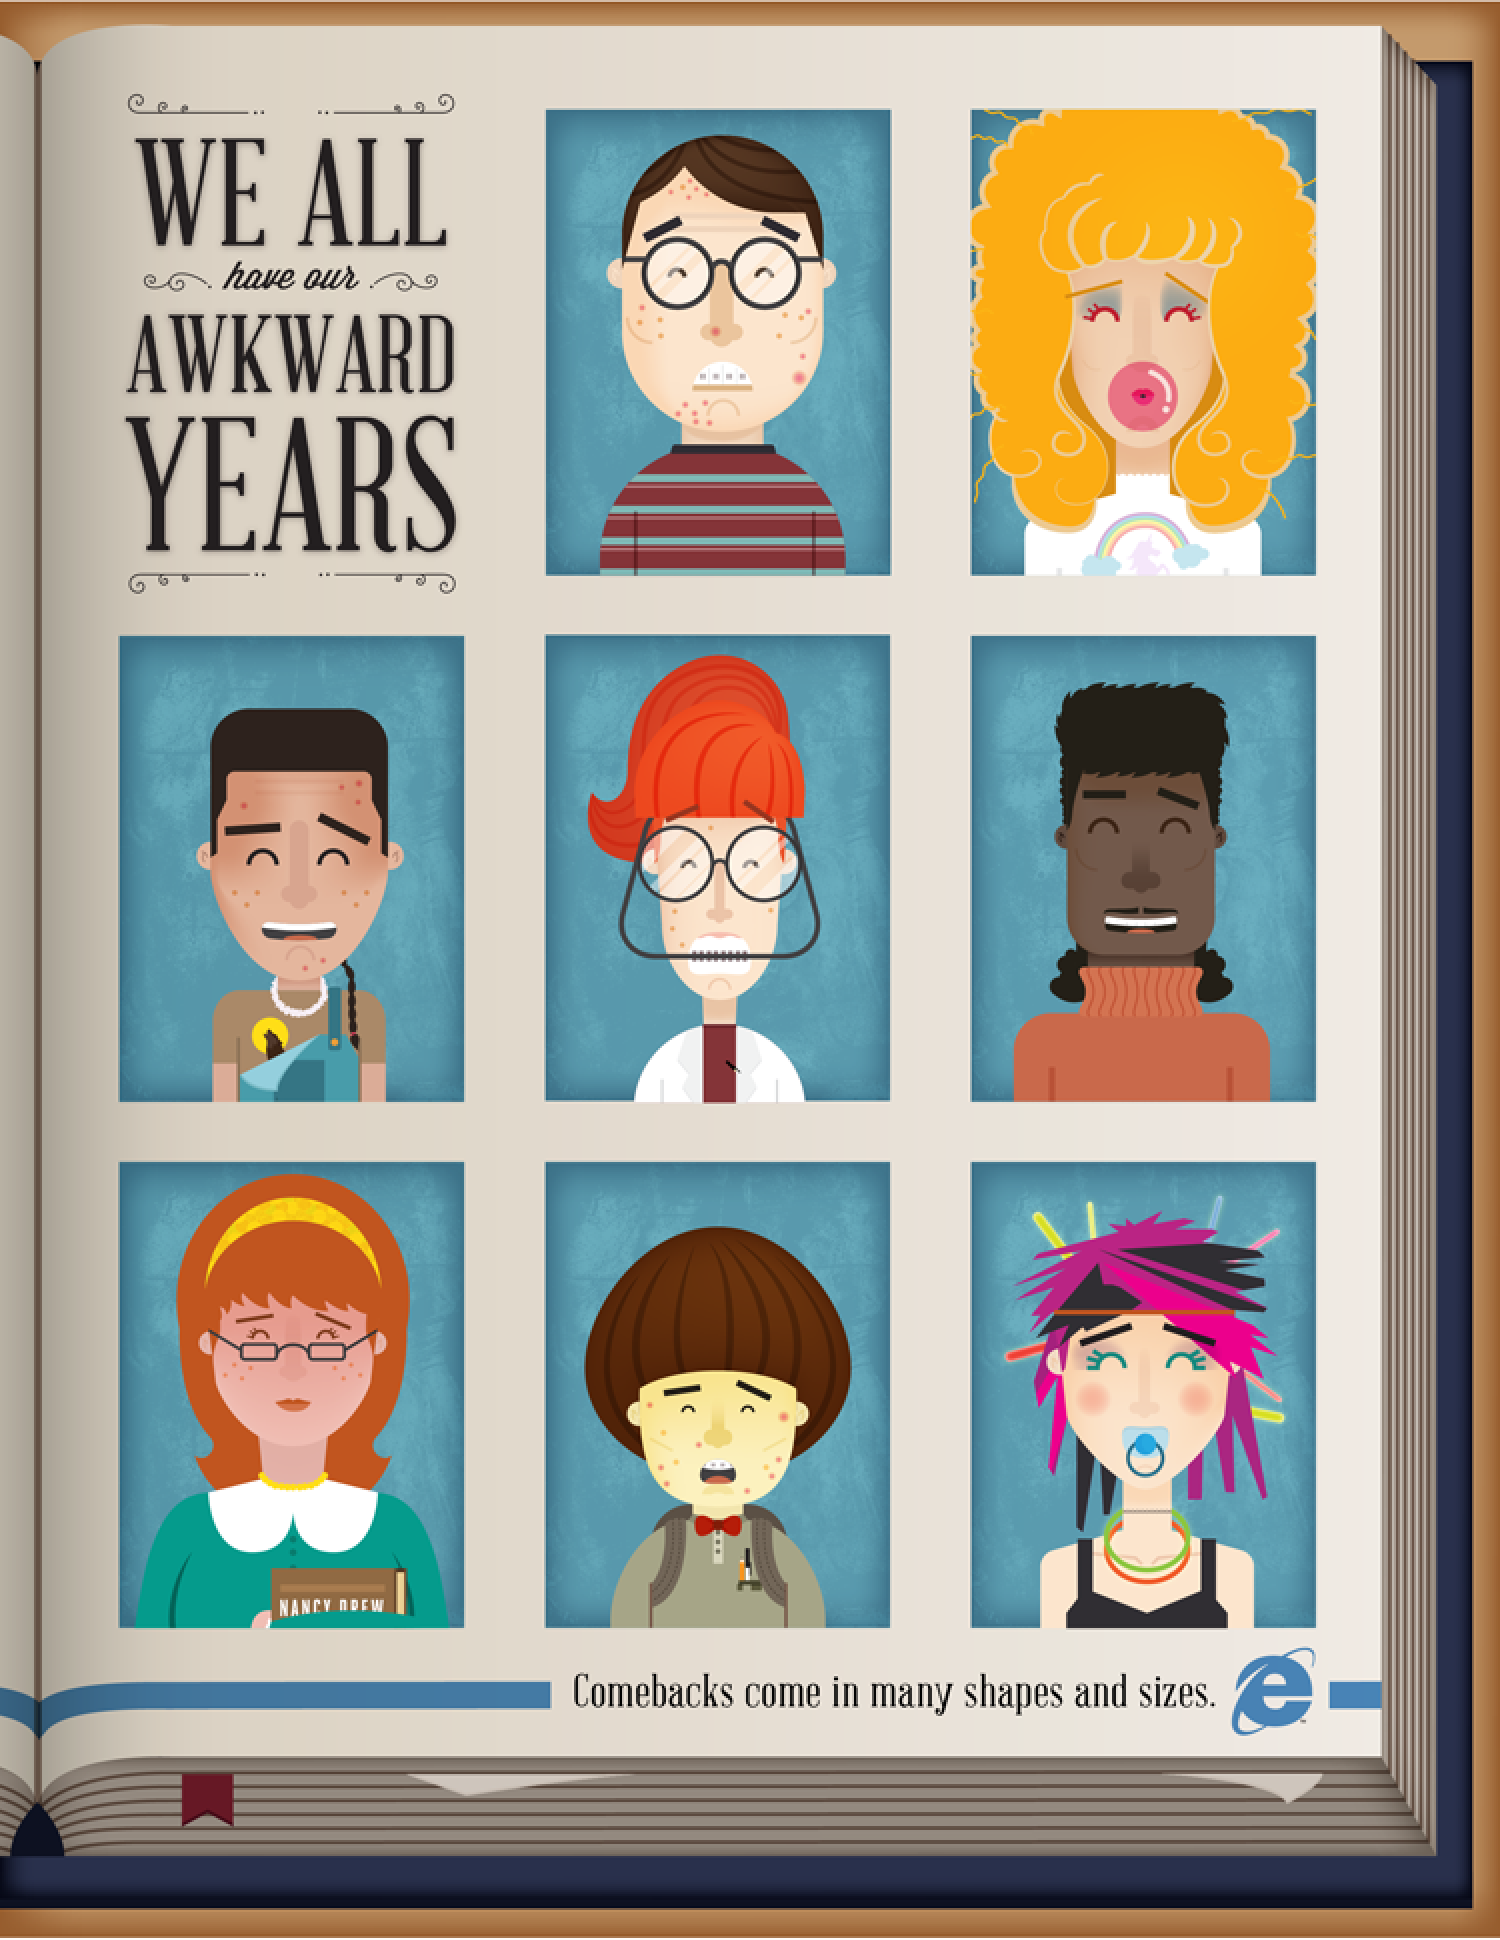 We All Have Our Awkward Years Infographic